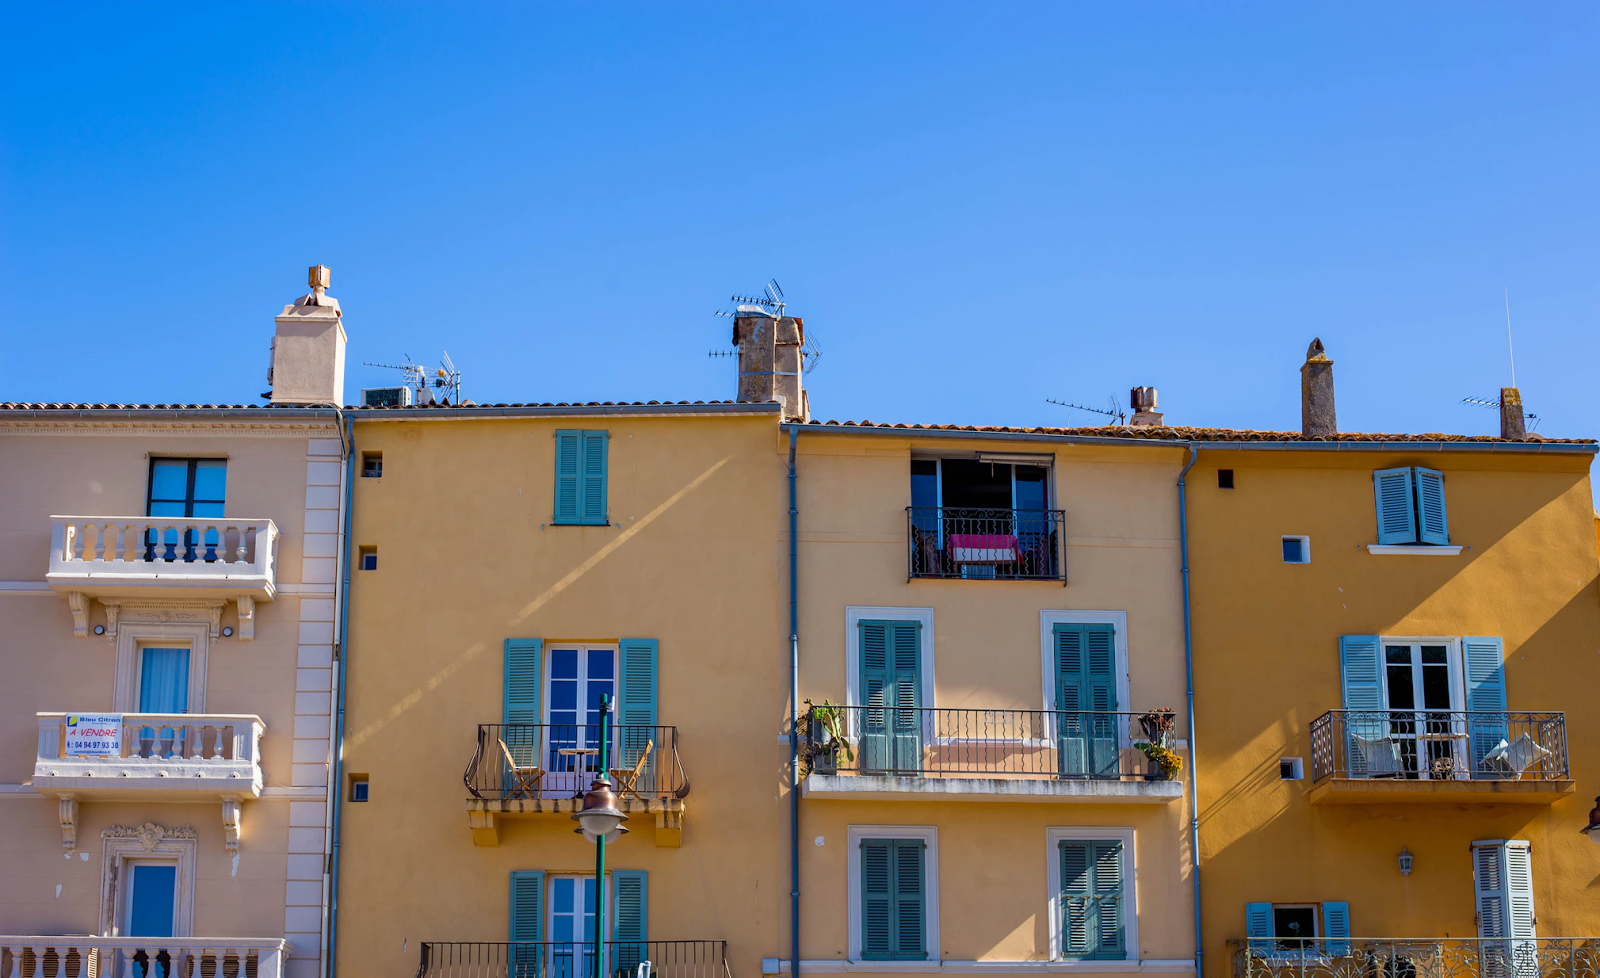 View of four colourful houses in Saint Tropez